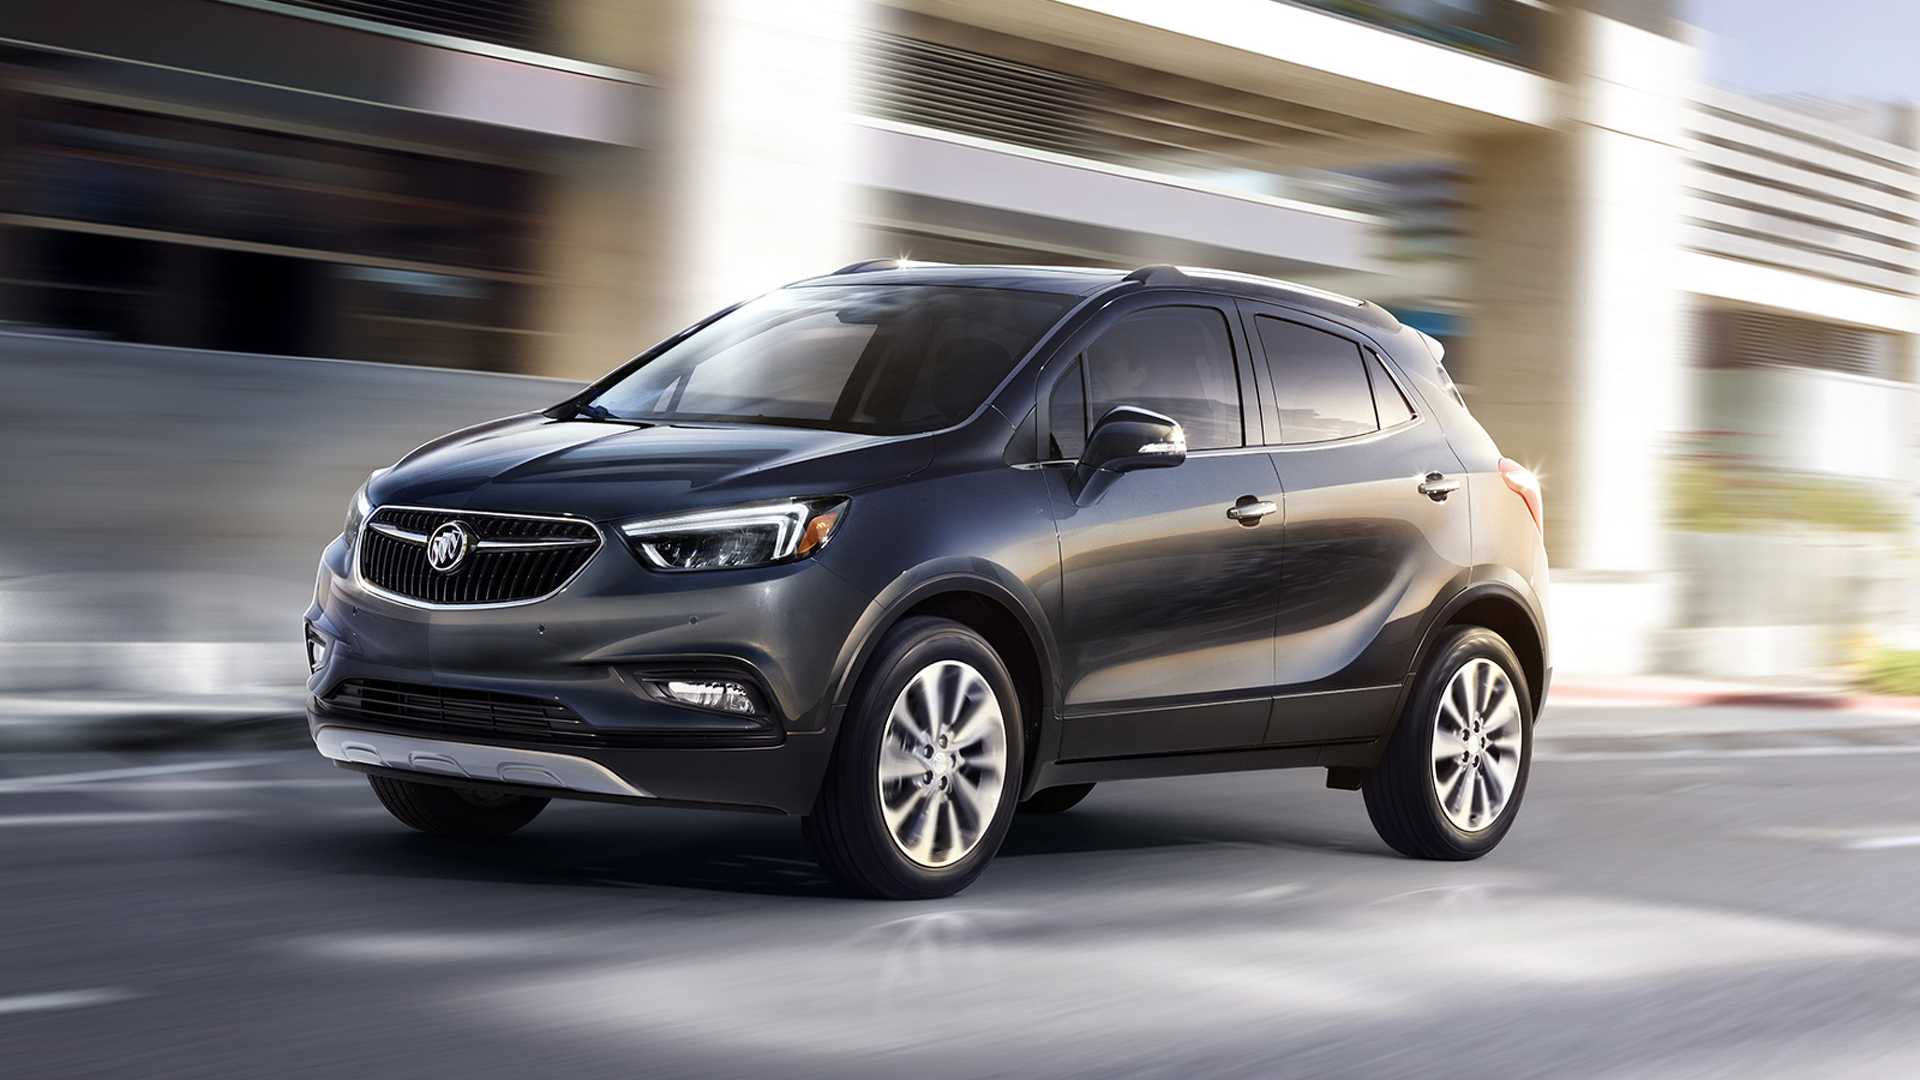 2017 Buick Encore unveiled with revised styling inside & out